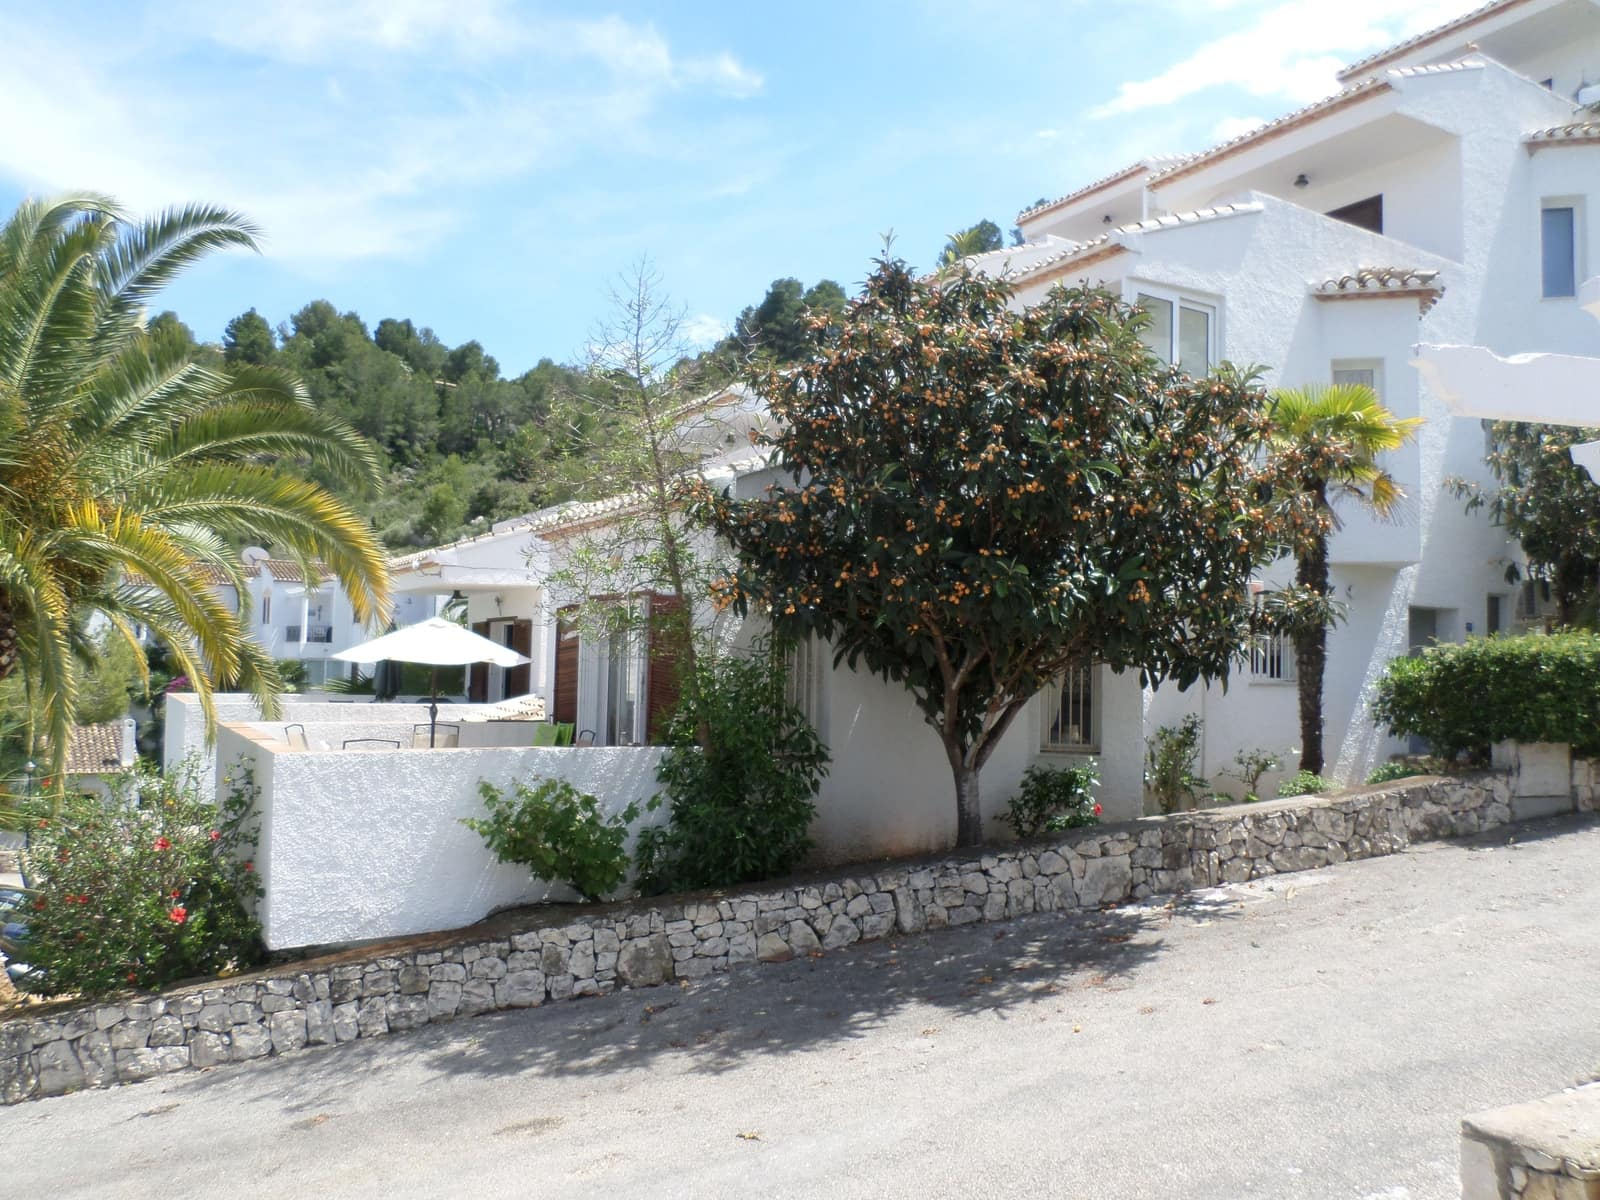 2 bedroom Apartment for sale in La Sella with pool - € 109,990 (Ref: 5374438)